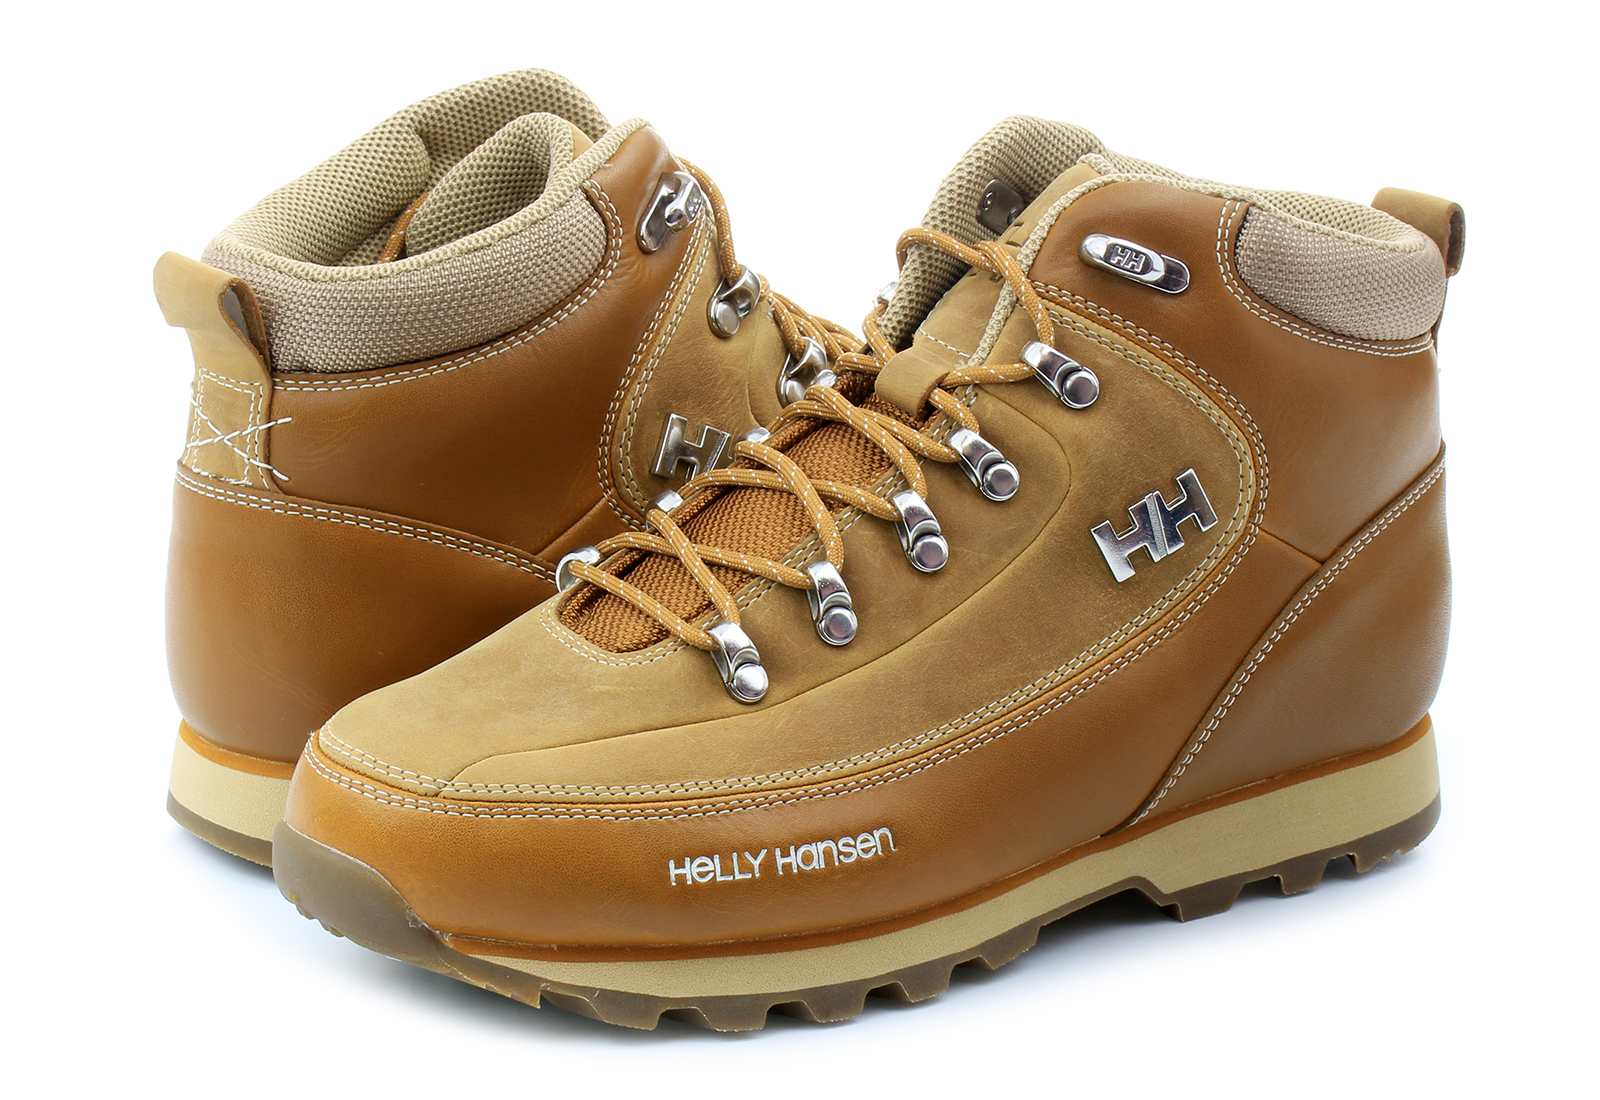 Helly Hansen Boots - W The Forester - 10516-731 - Online shop for ... 4fe4da6e9a